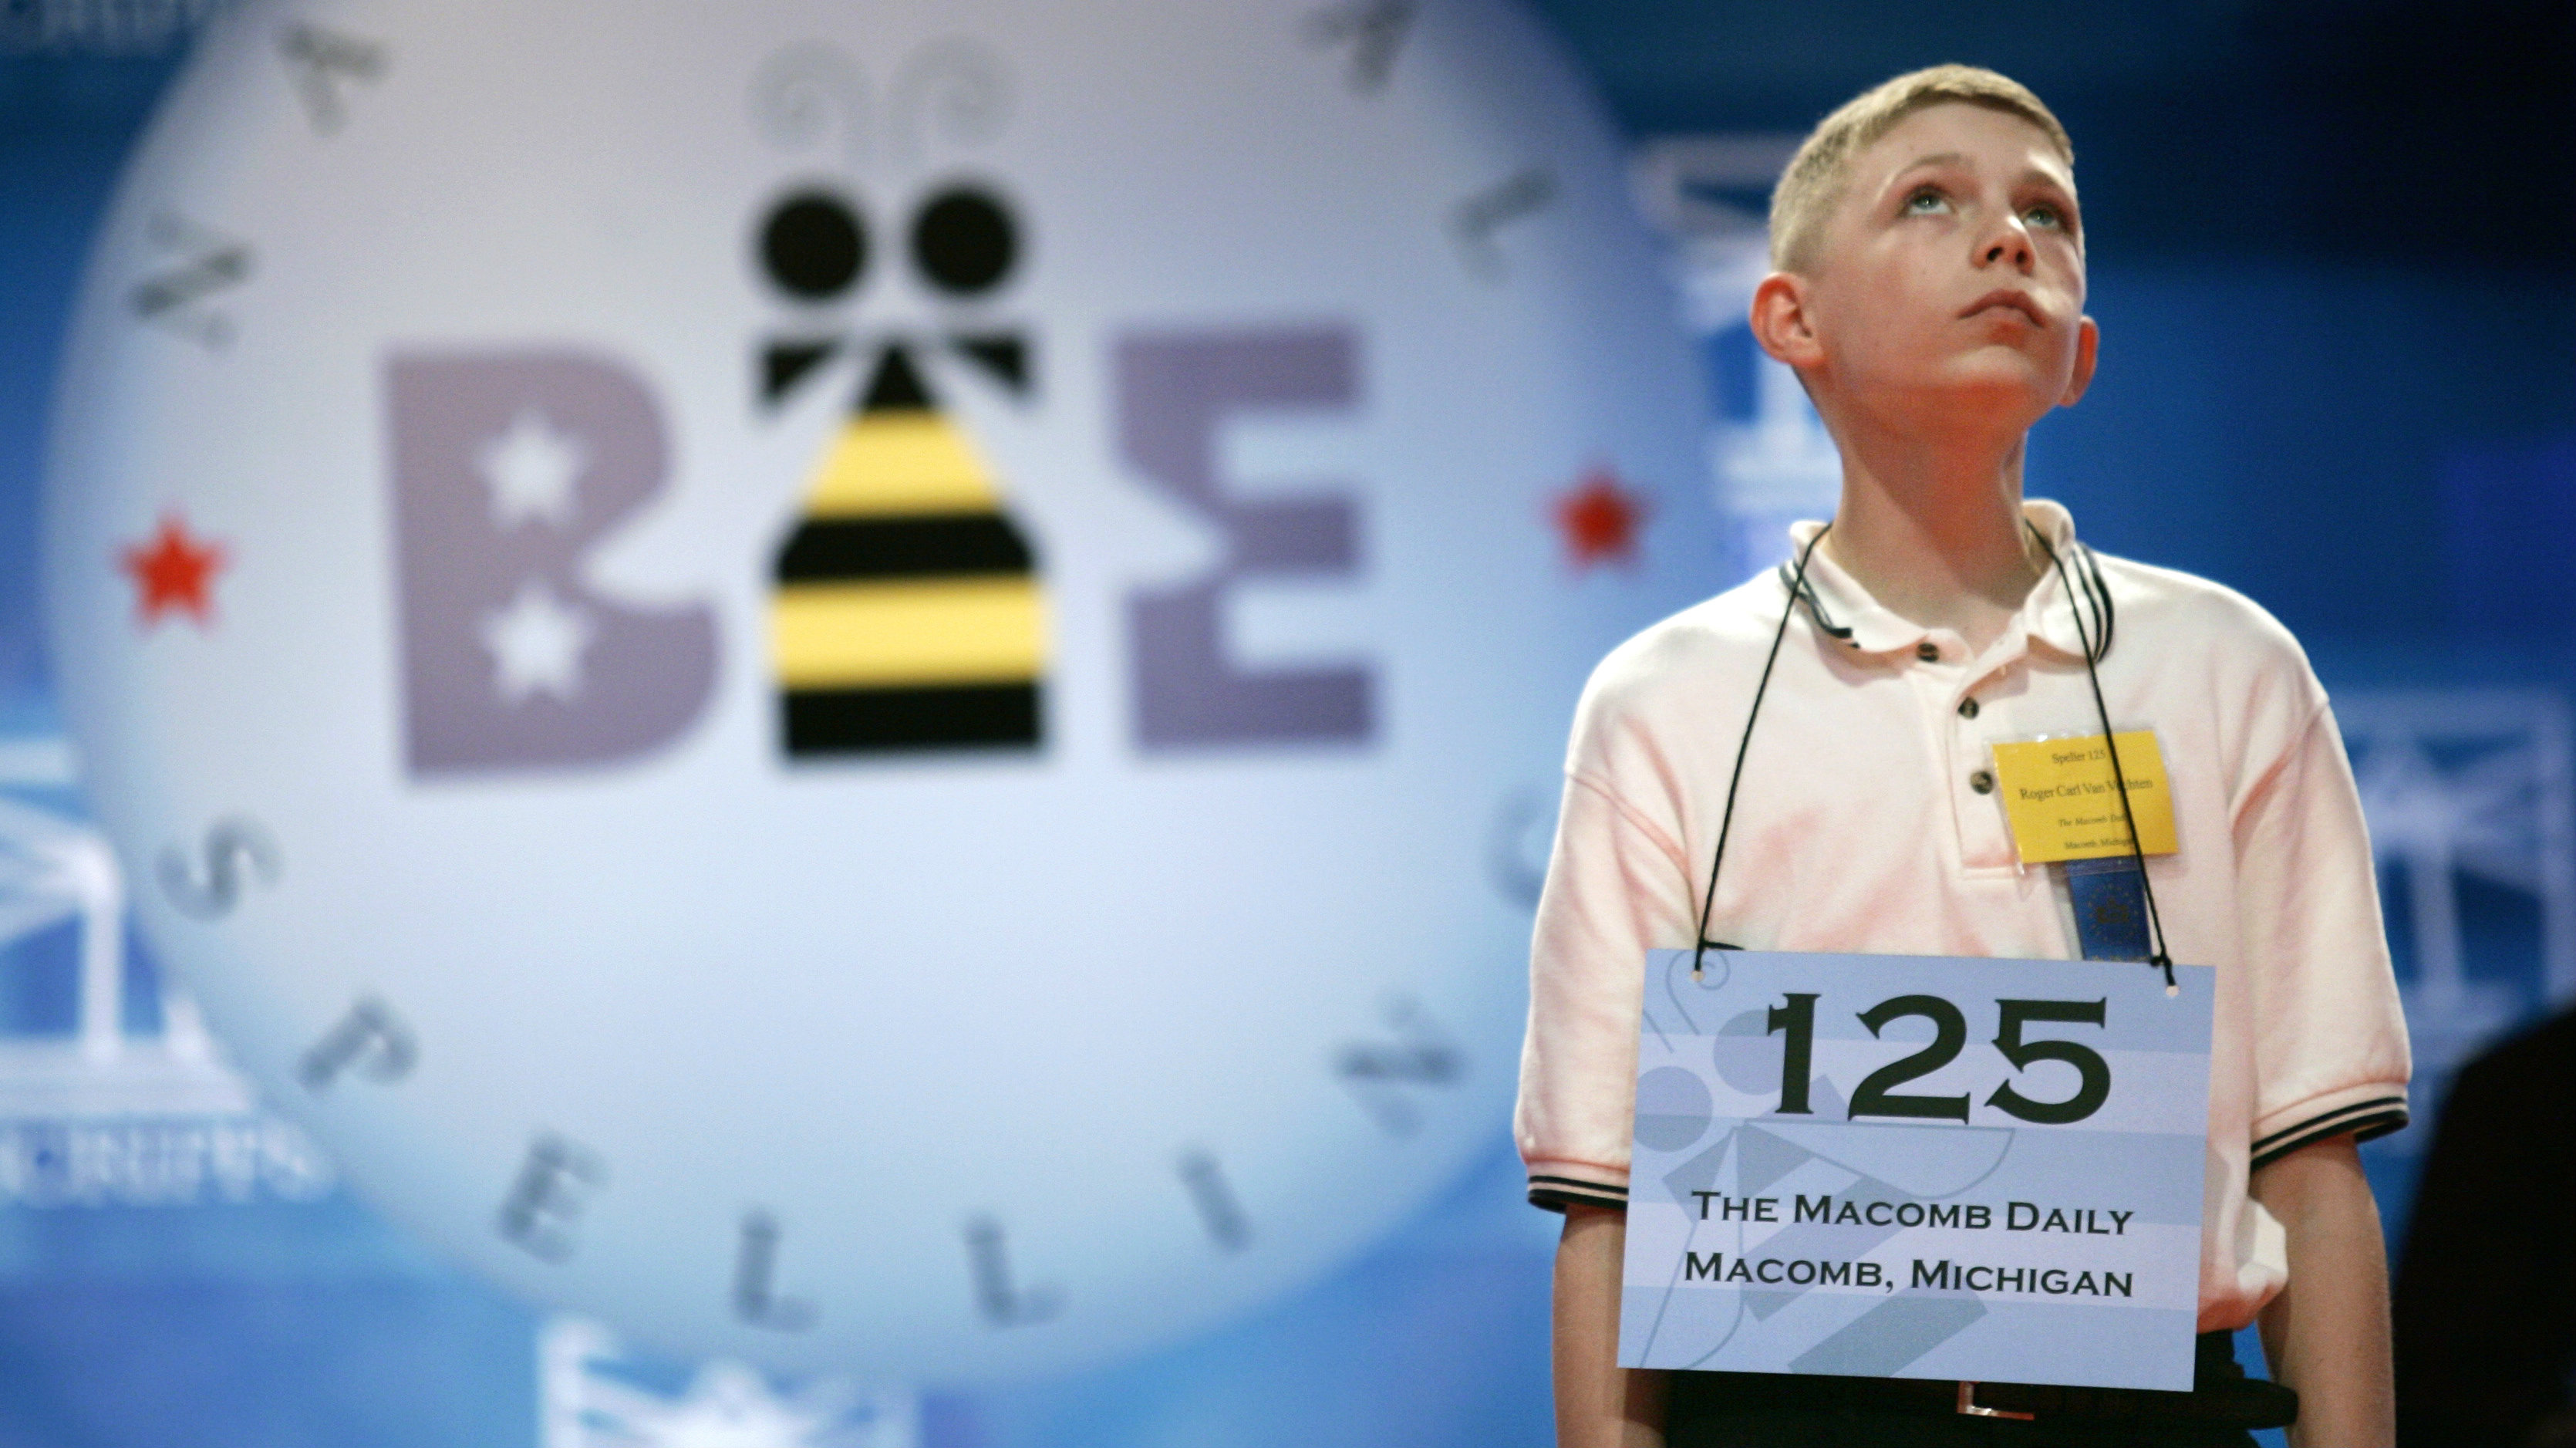 Roger Van Vechten, 14, of Macomb Michigan, looks up as he takes his turn during the National Spelling Bee in Washington May 31, 2006. The finals on June 1 will be broadcast live on prime-time network television for the first time. REUTERS/Kevin Lamarque